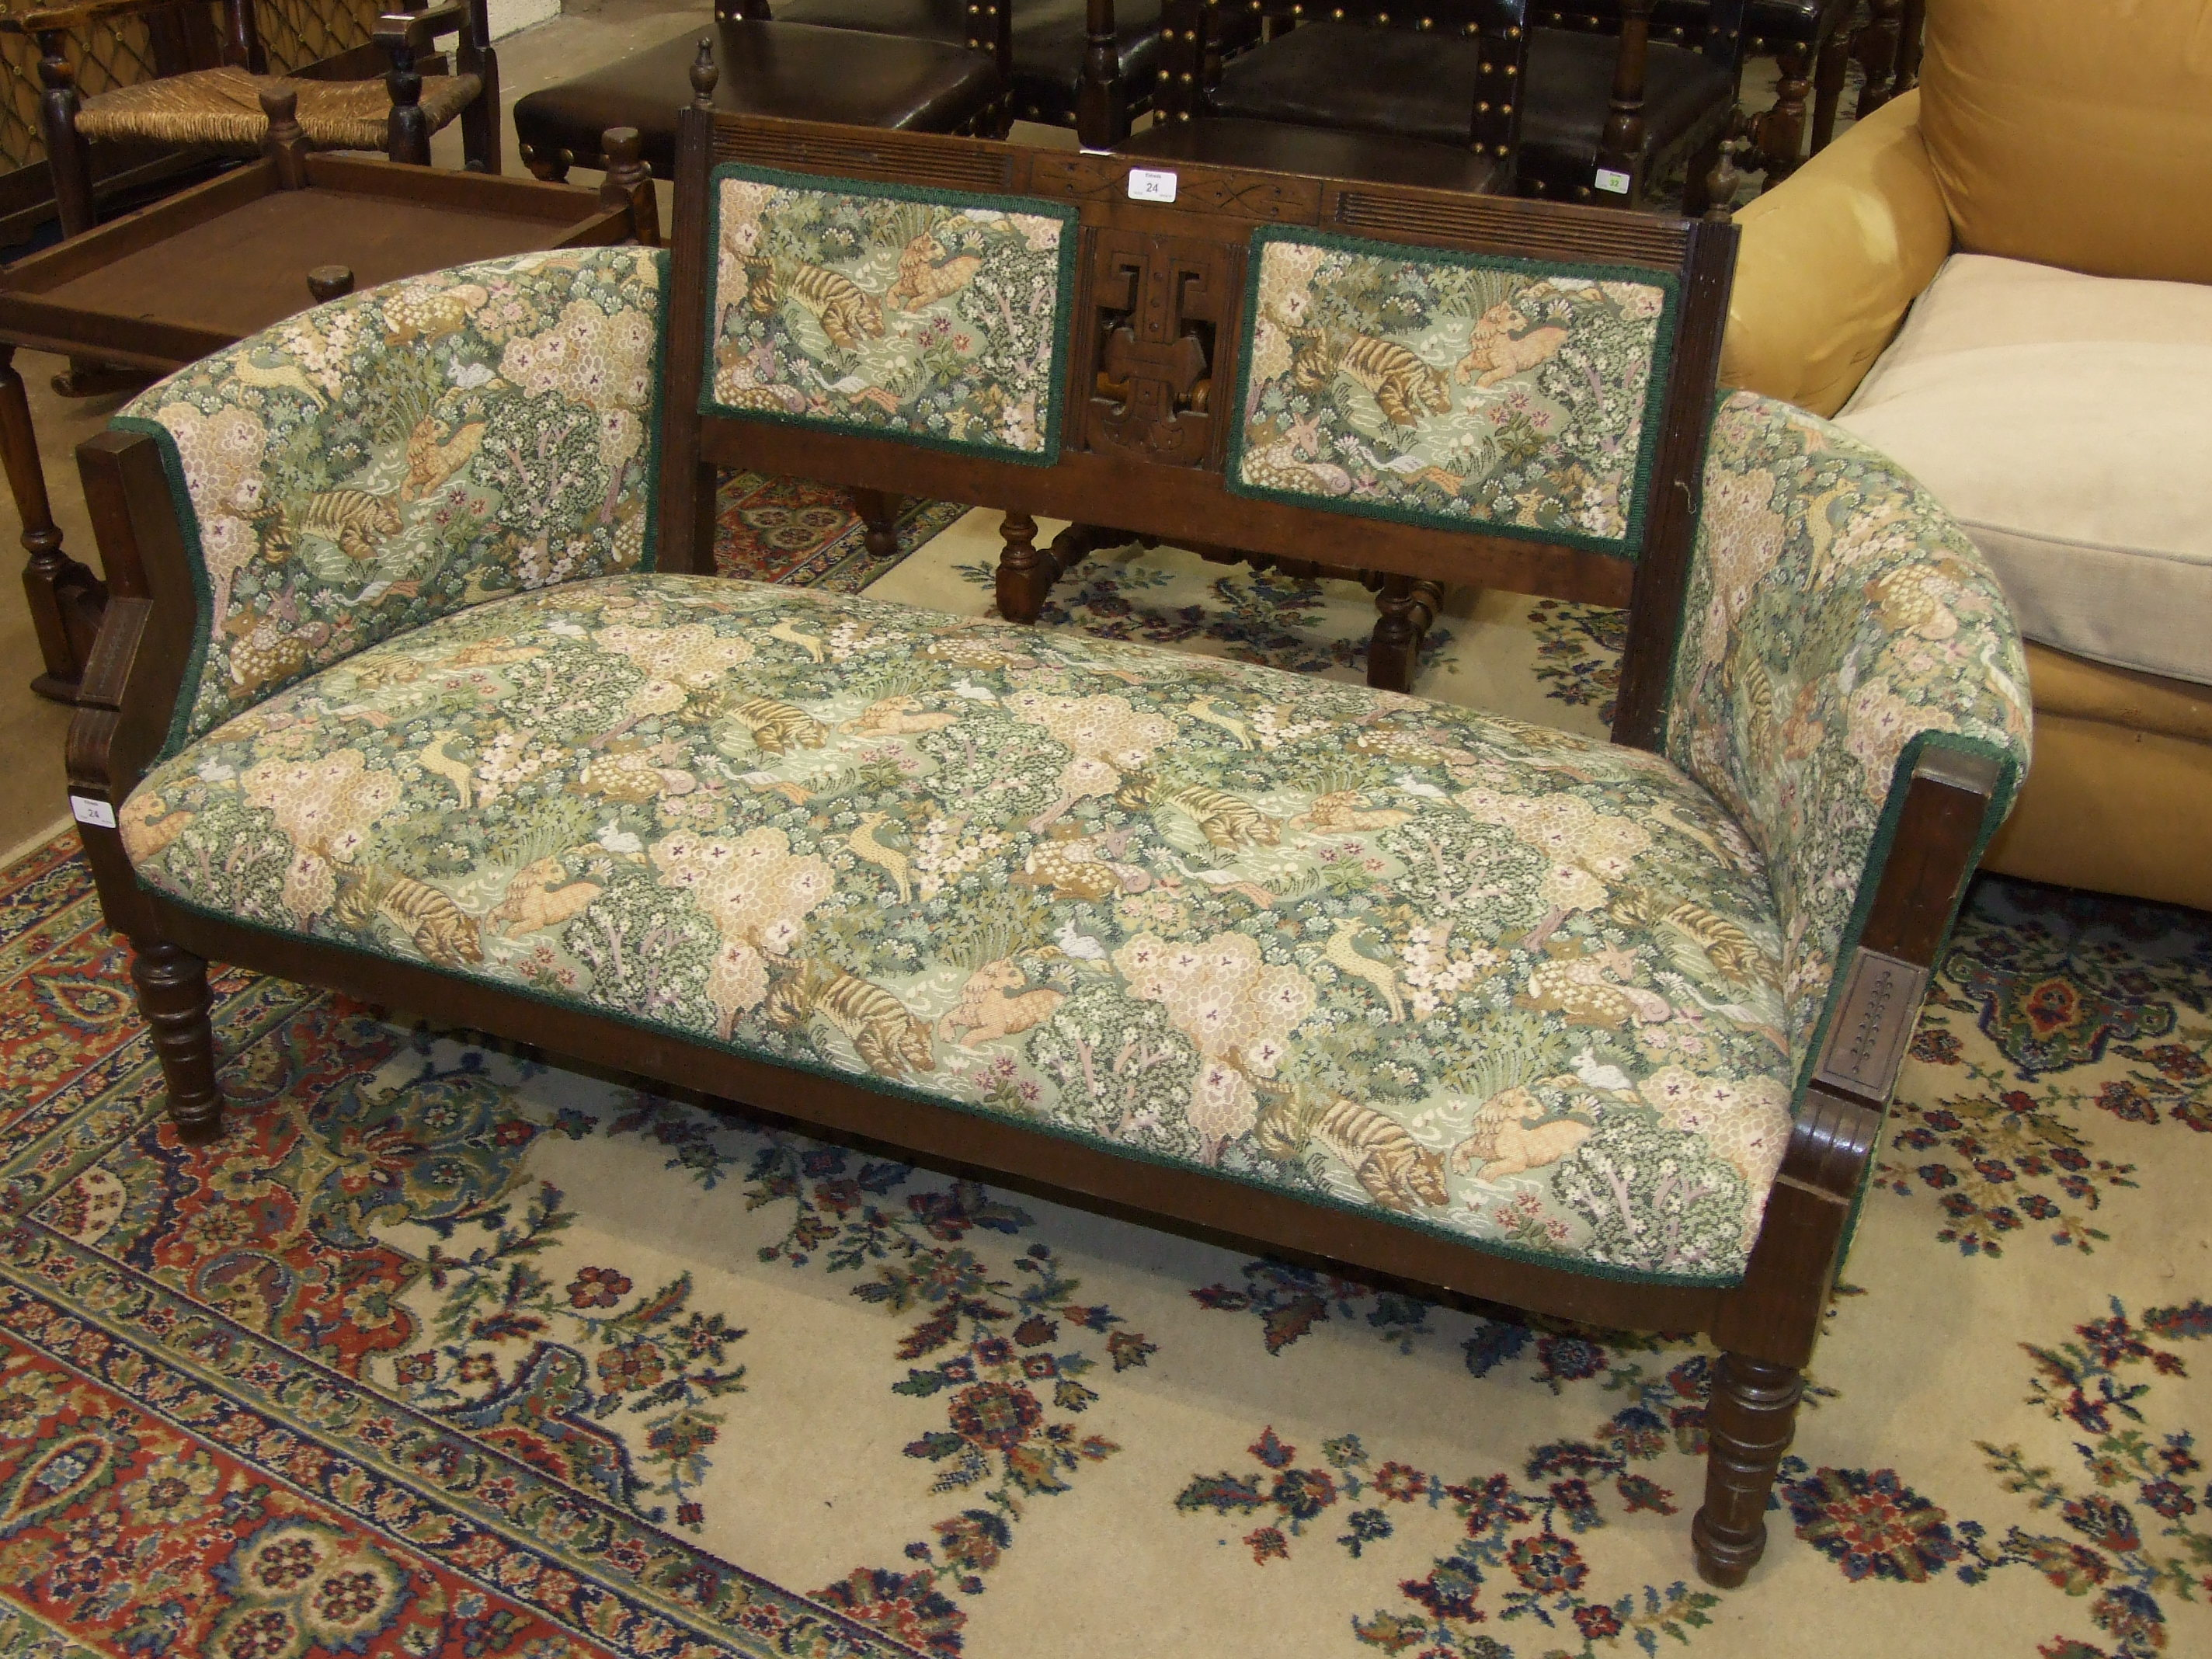 Lot 24 - An Edwardian mahogany frame two-seater settee with upholstered back, arms and seat, on turned